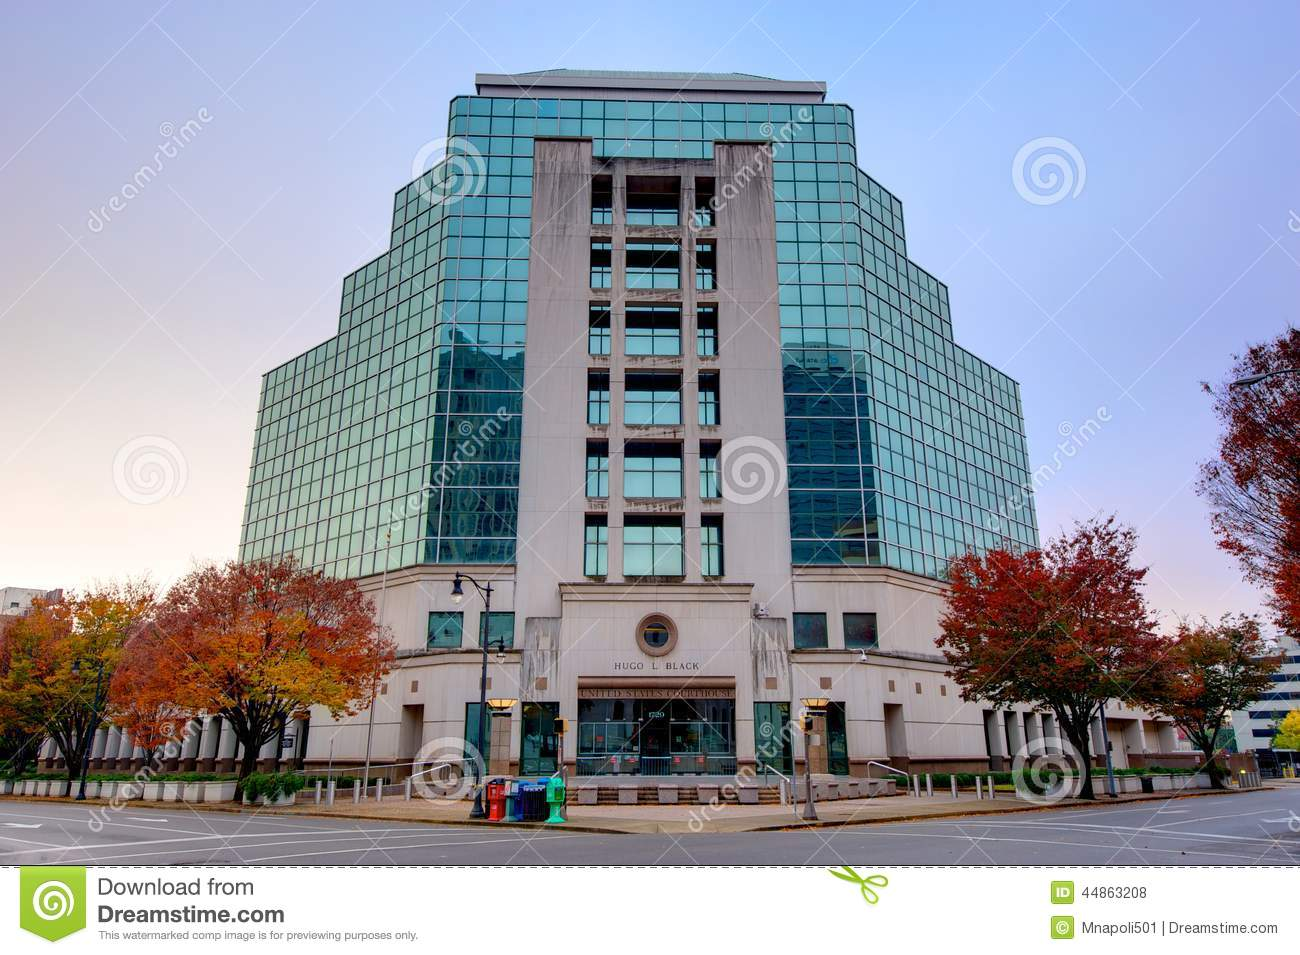 Birmingham (AL) United States  City pictures : Courthouse Birmingham, AL Stock Photo Image: 44863208